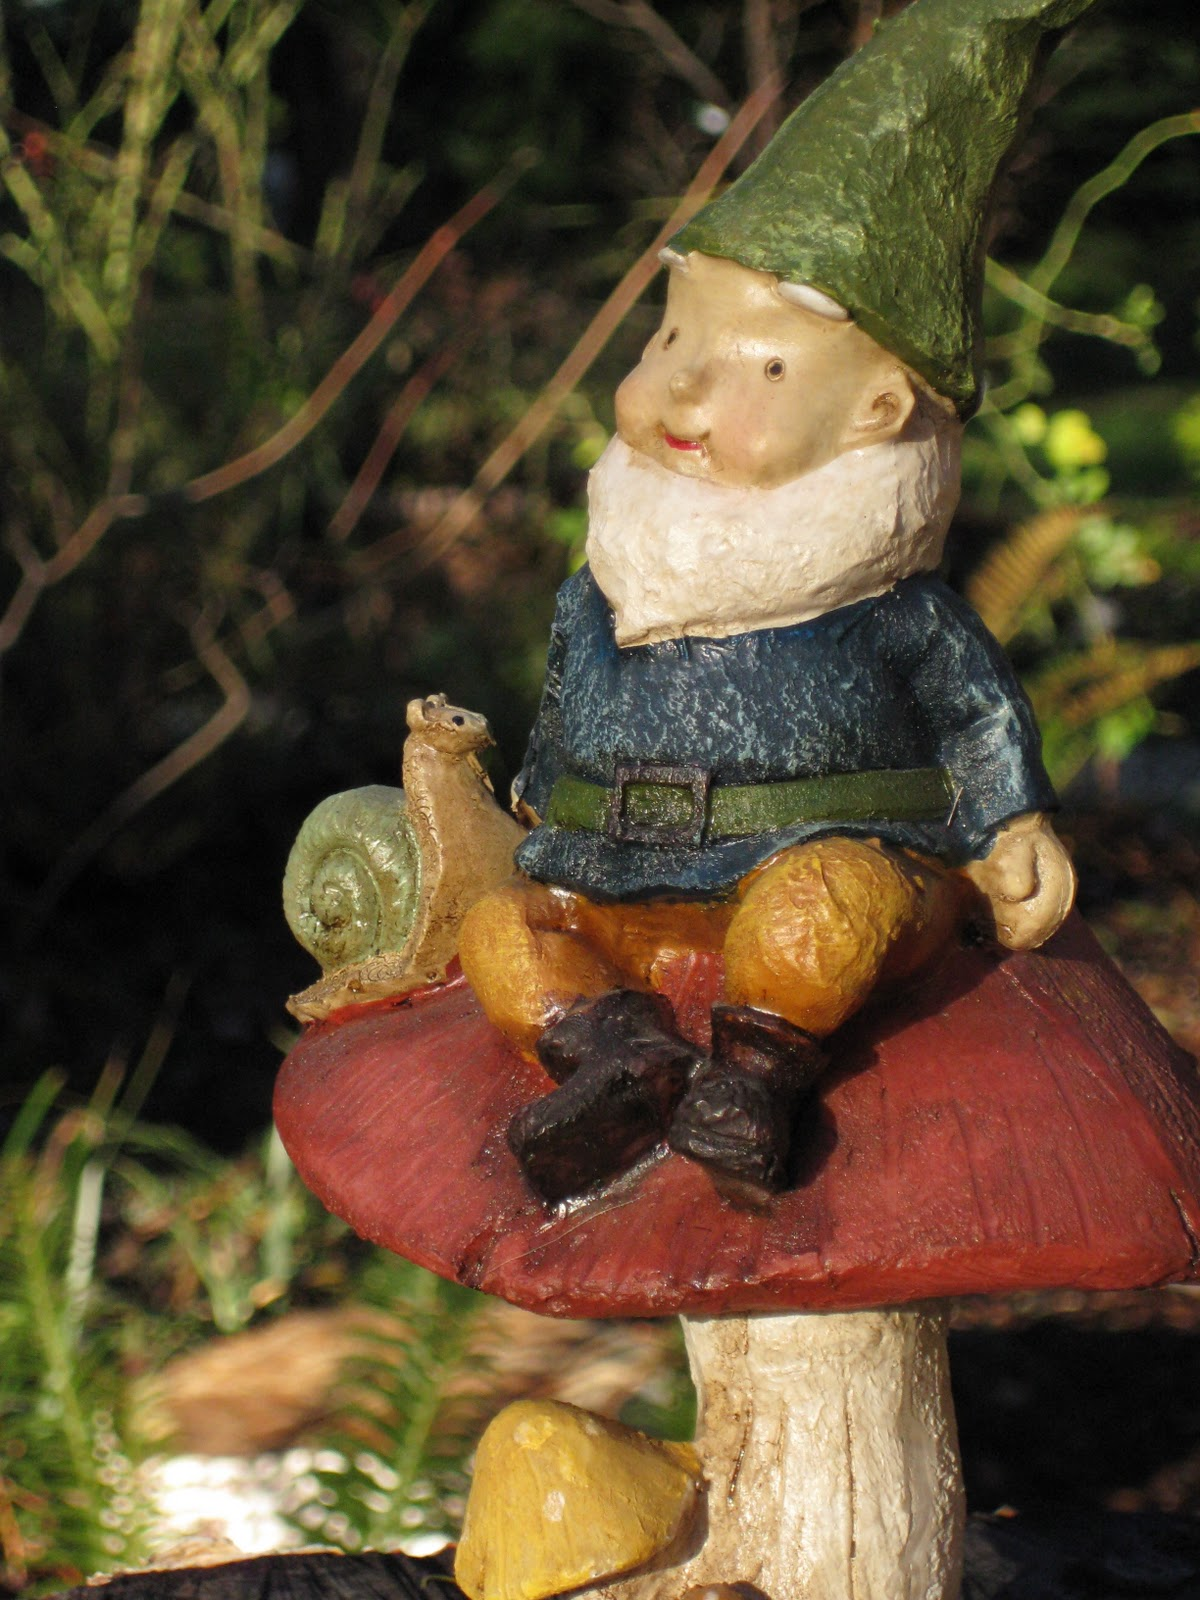 Gnome 4: Gnome Stories At Whimsical Woods: January 2011